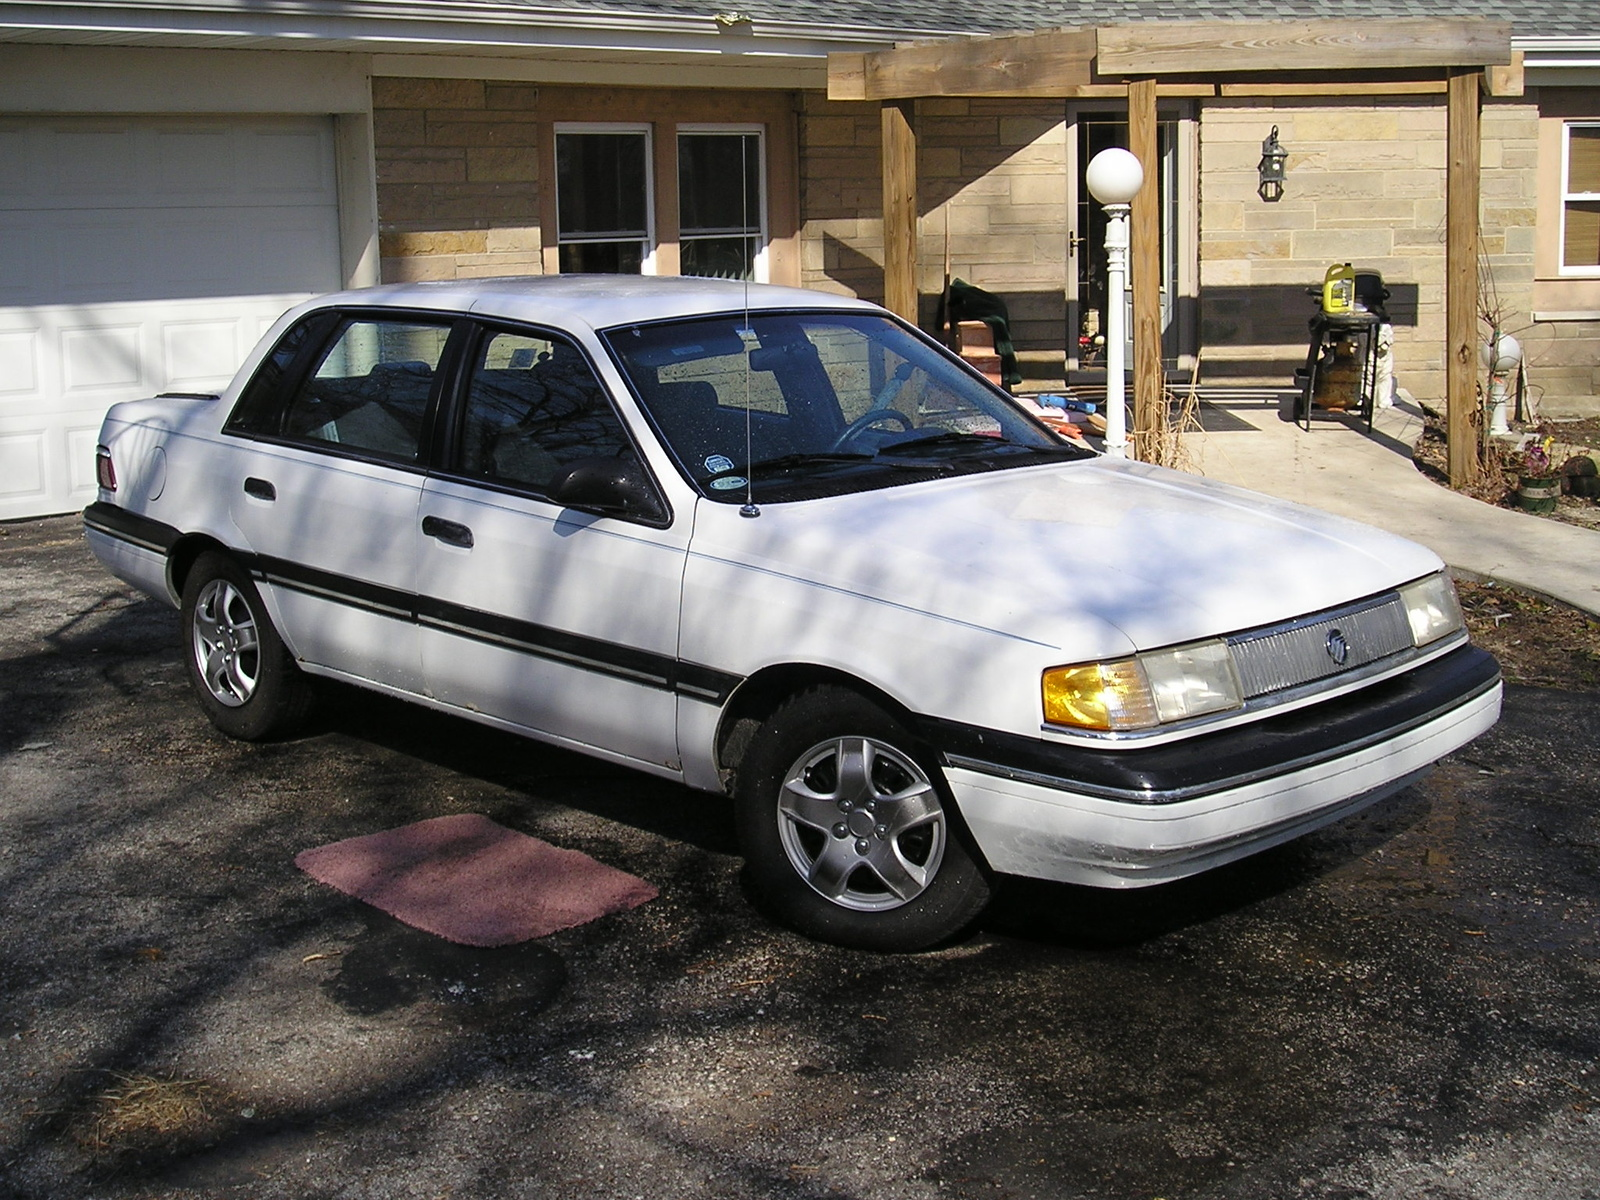 1990 mercury topaz 4 dr gs sedan picture exterior